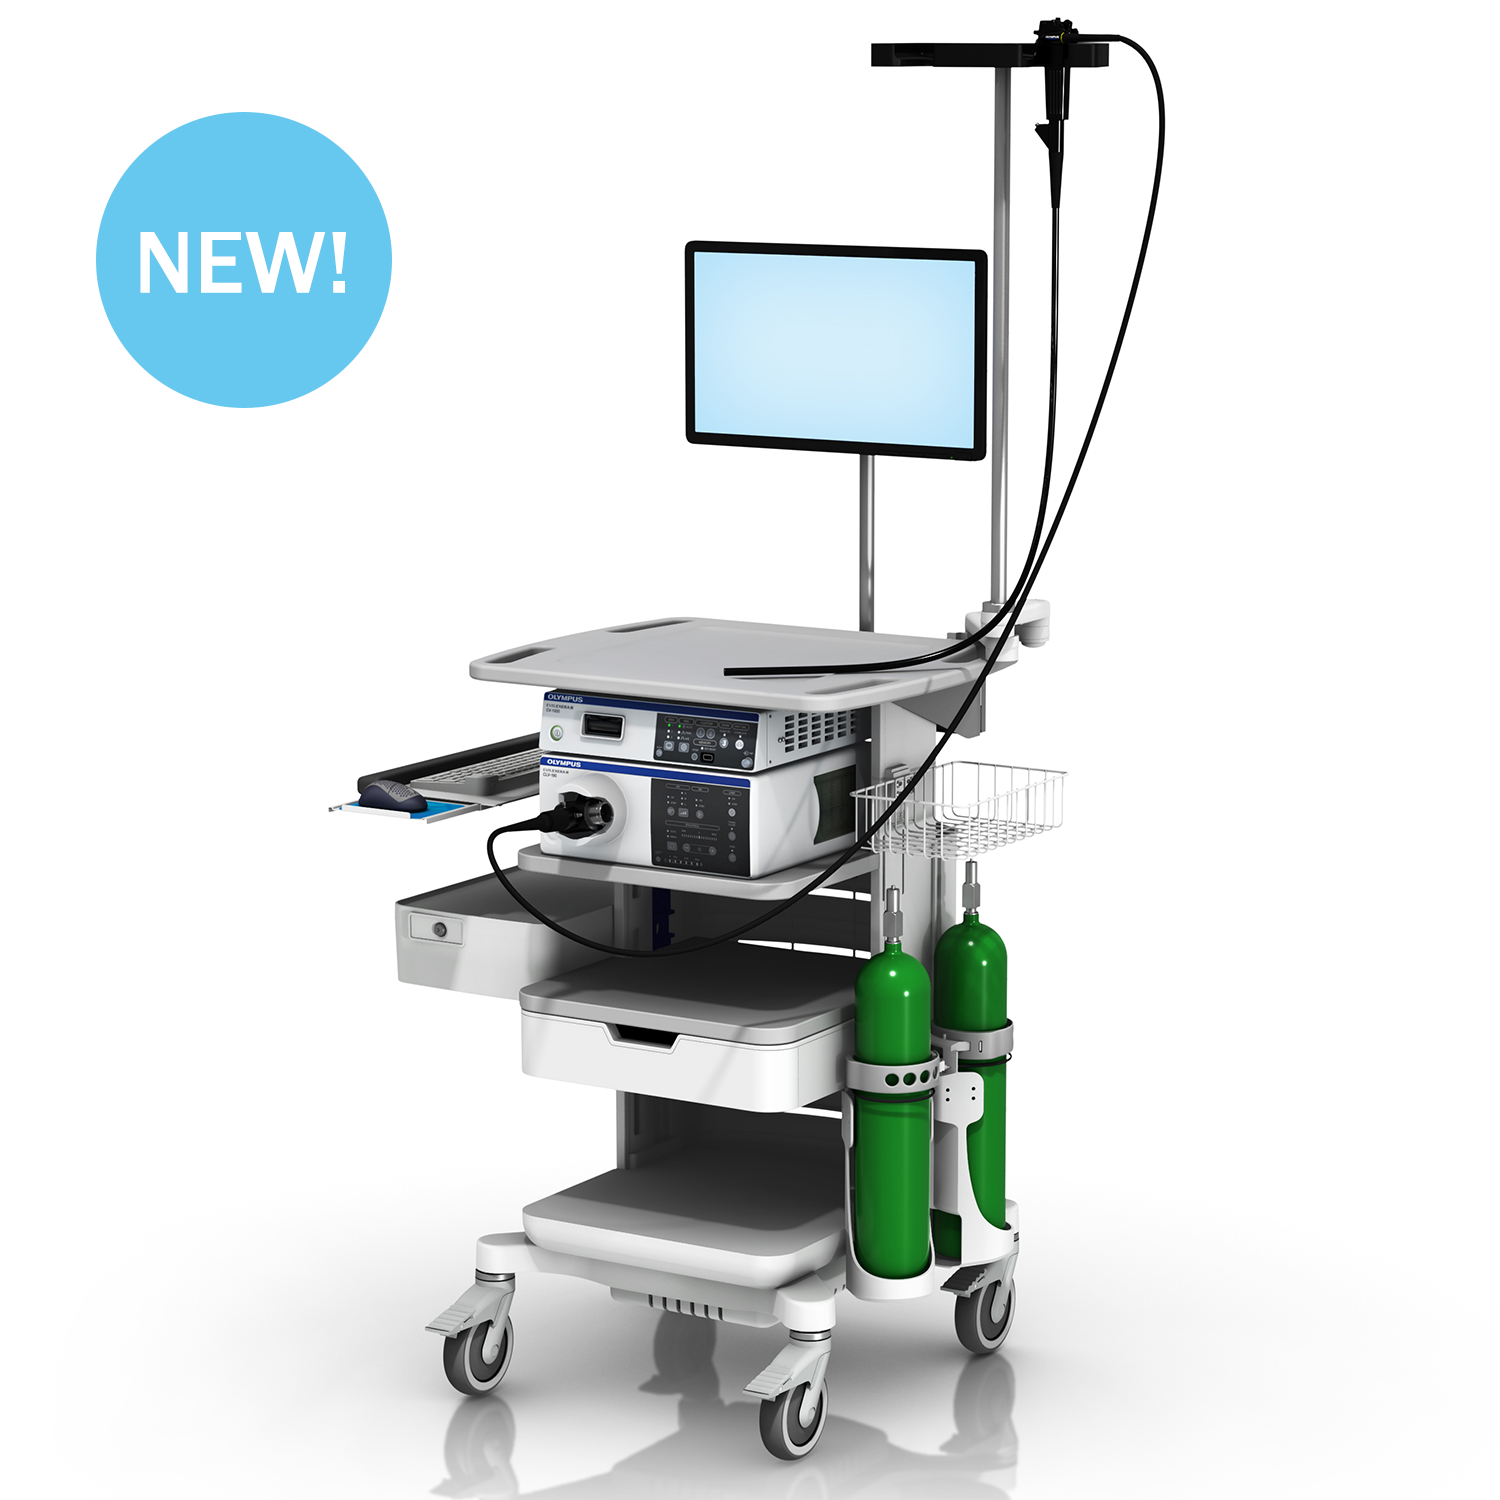 The New GCX Endoscopy Cart: Designed with the GI Professional in Mind